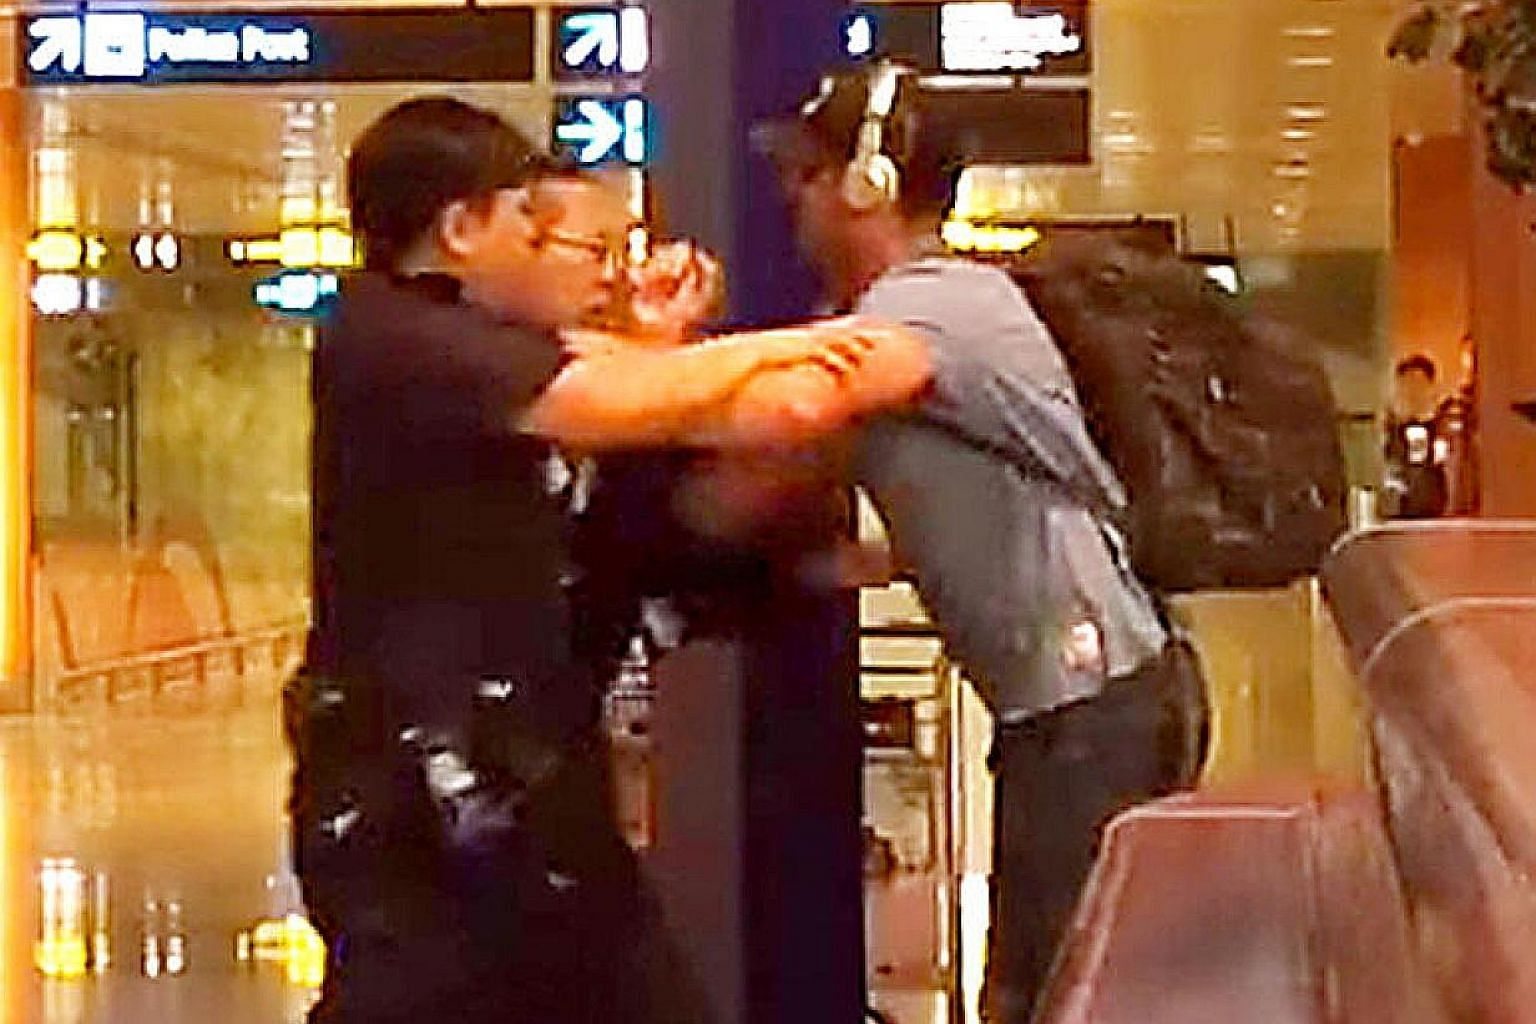 Screen grab from a video showing Jason Peter Darragh tussling with police officers at Changi Airport in April.